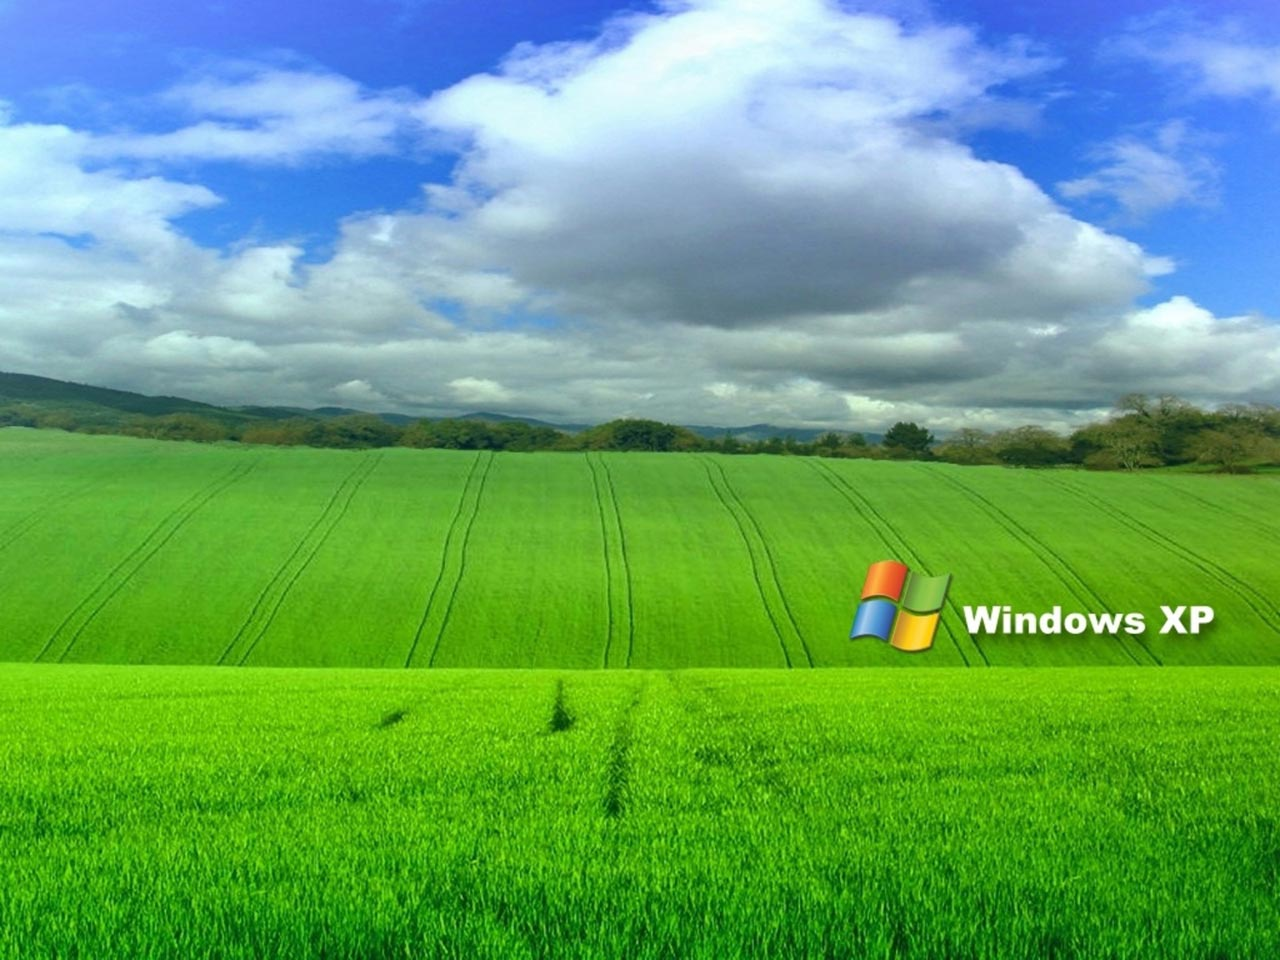 Download. Description wallpaper: Desktop Pictures for Windows XP ...